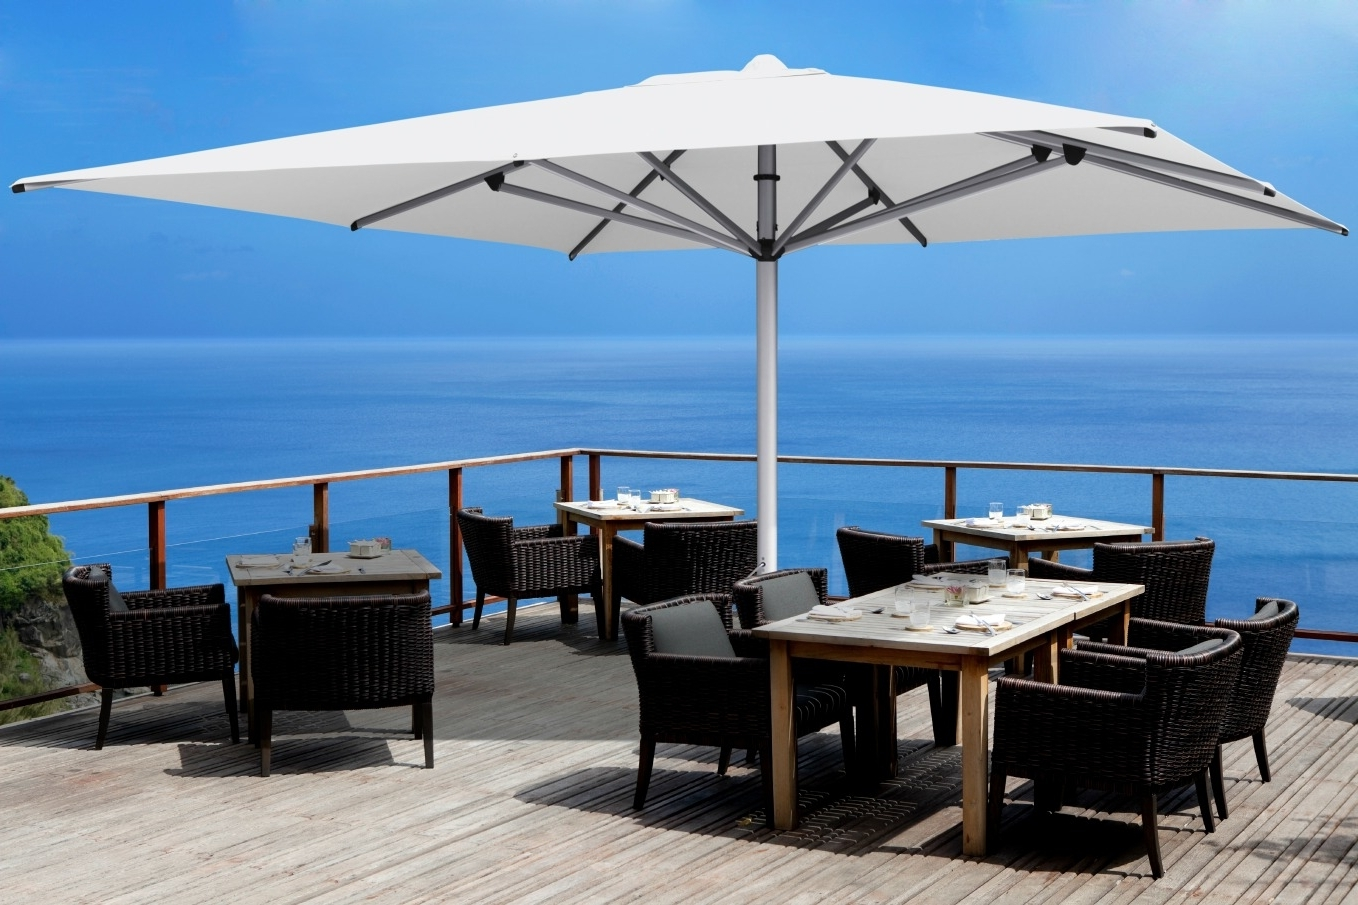 Famous Shadowspec Luxury Umbrella Systems: 5 Reasons Why Commercial Outdoor Regarding Extended Patio Umbrellas (View 8 of 20)